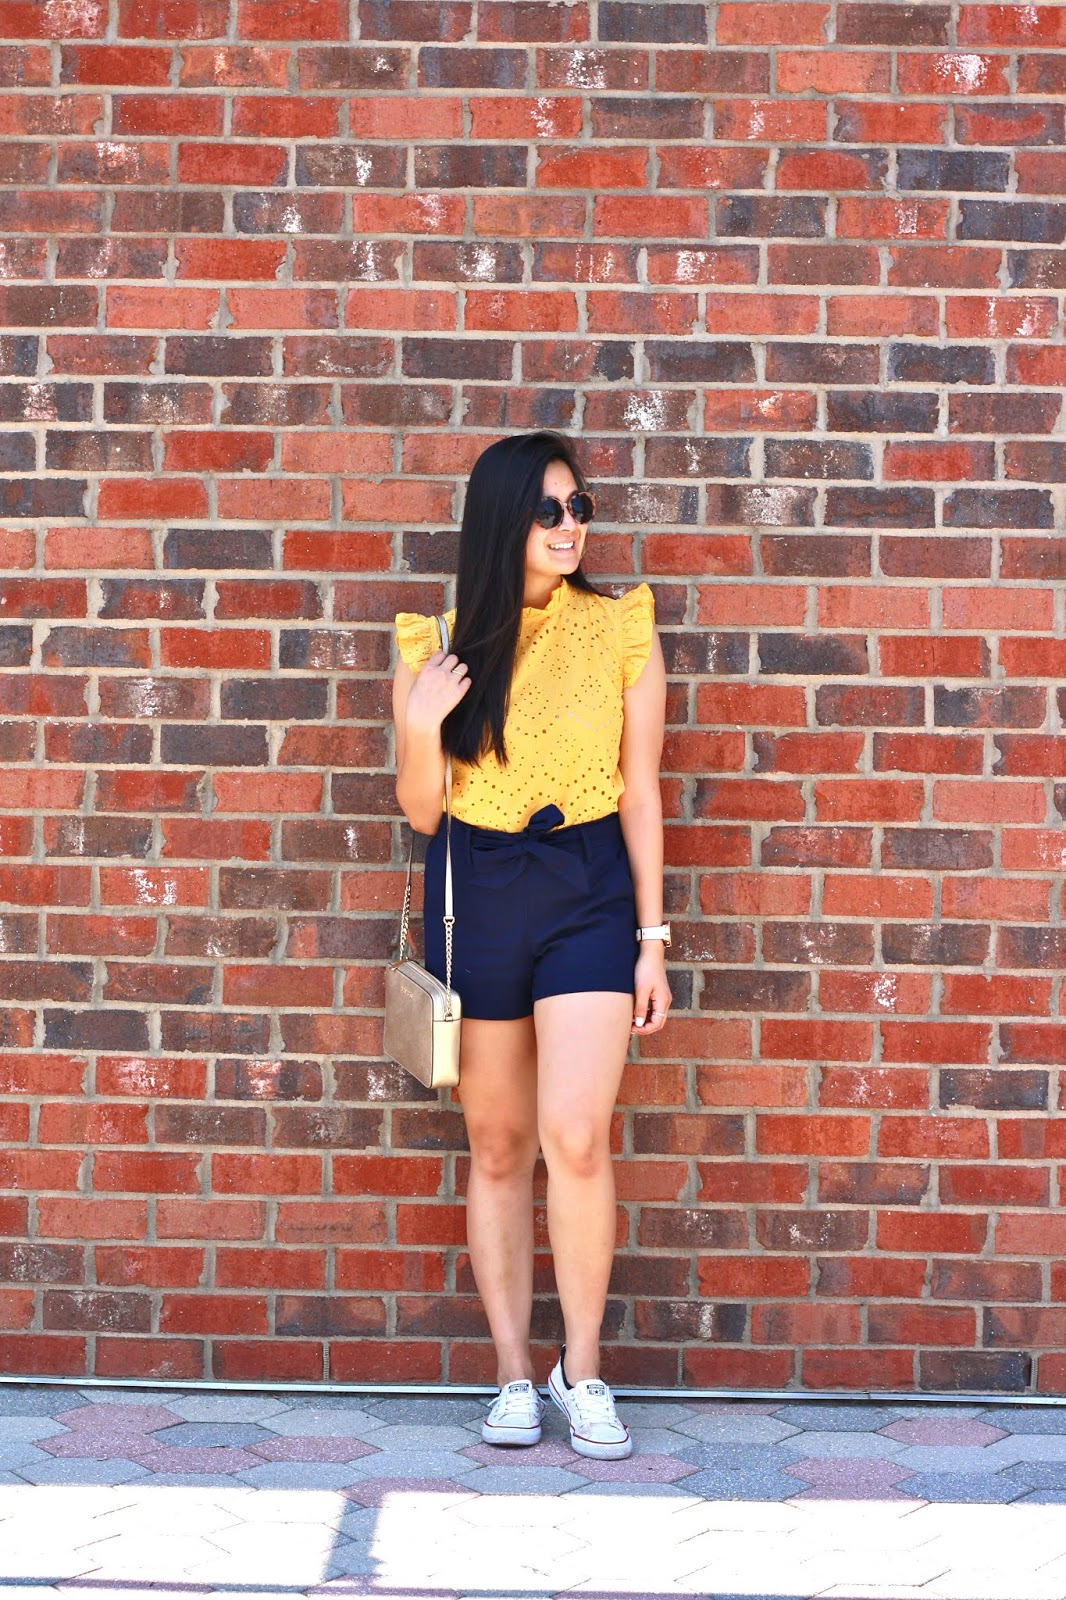 Yellow and Navy Summer Outfit - Affordable summer outfit - Amazon Prime Fashion Find